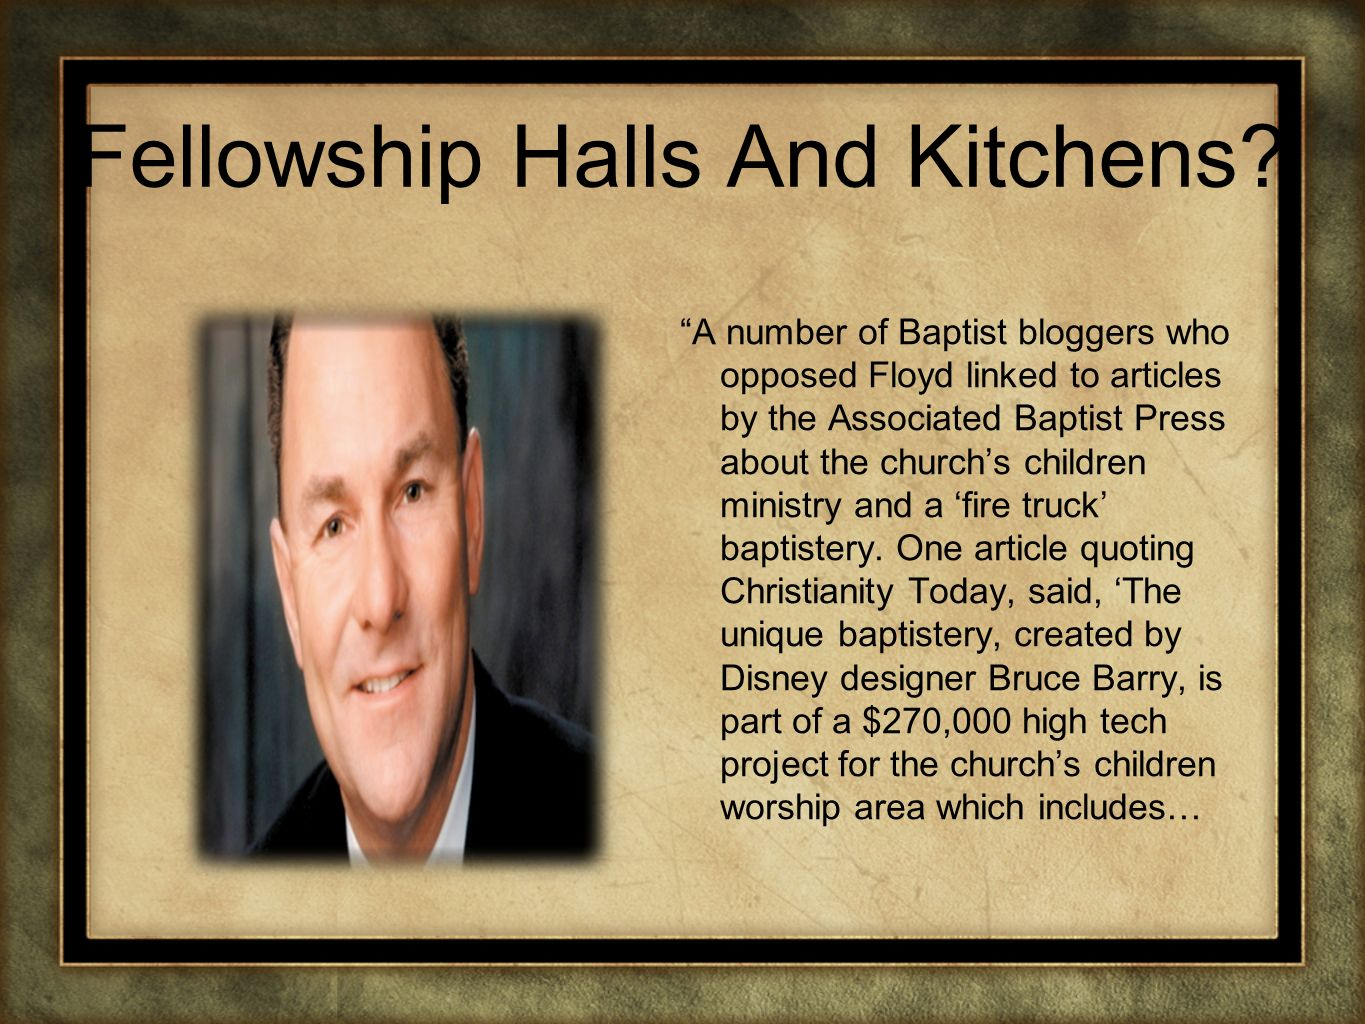 Fellowship Halls And Kitchens? A number of Baptist bloggers who opposed Floyd linked to articles by the Associated Baptist Press about the churchs chi